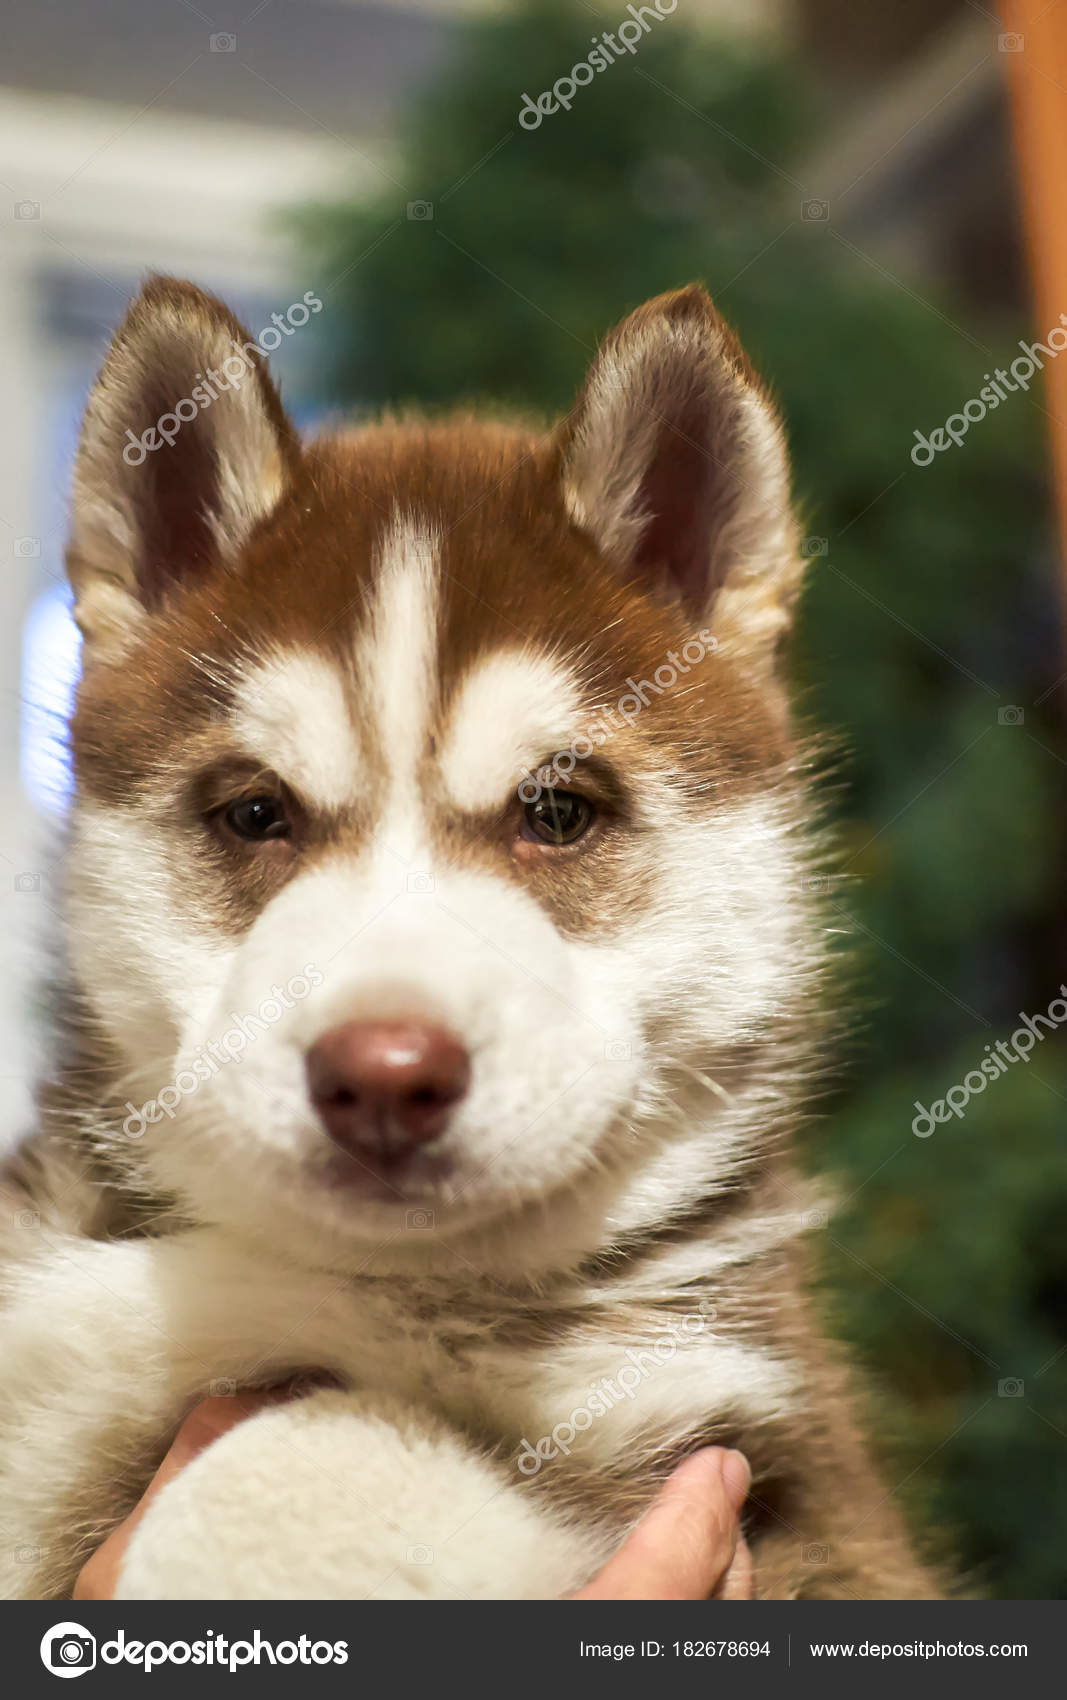 Pretty Husky Little Puppy Sits On Hands And Looking At Camera